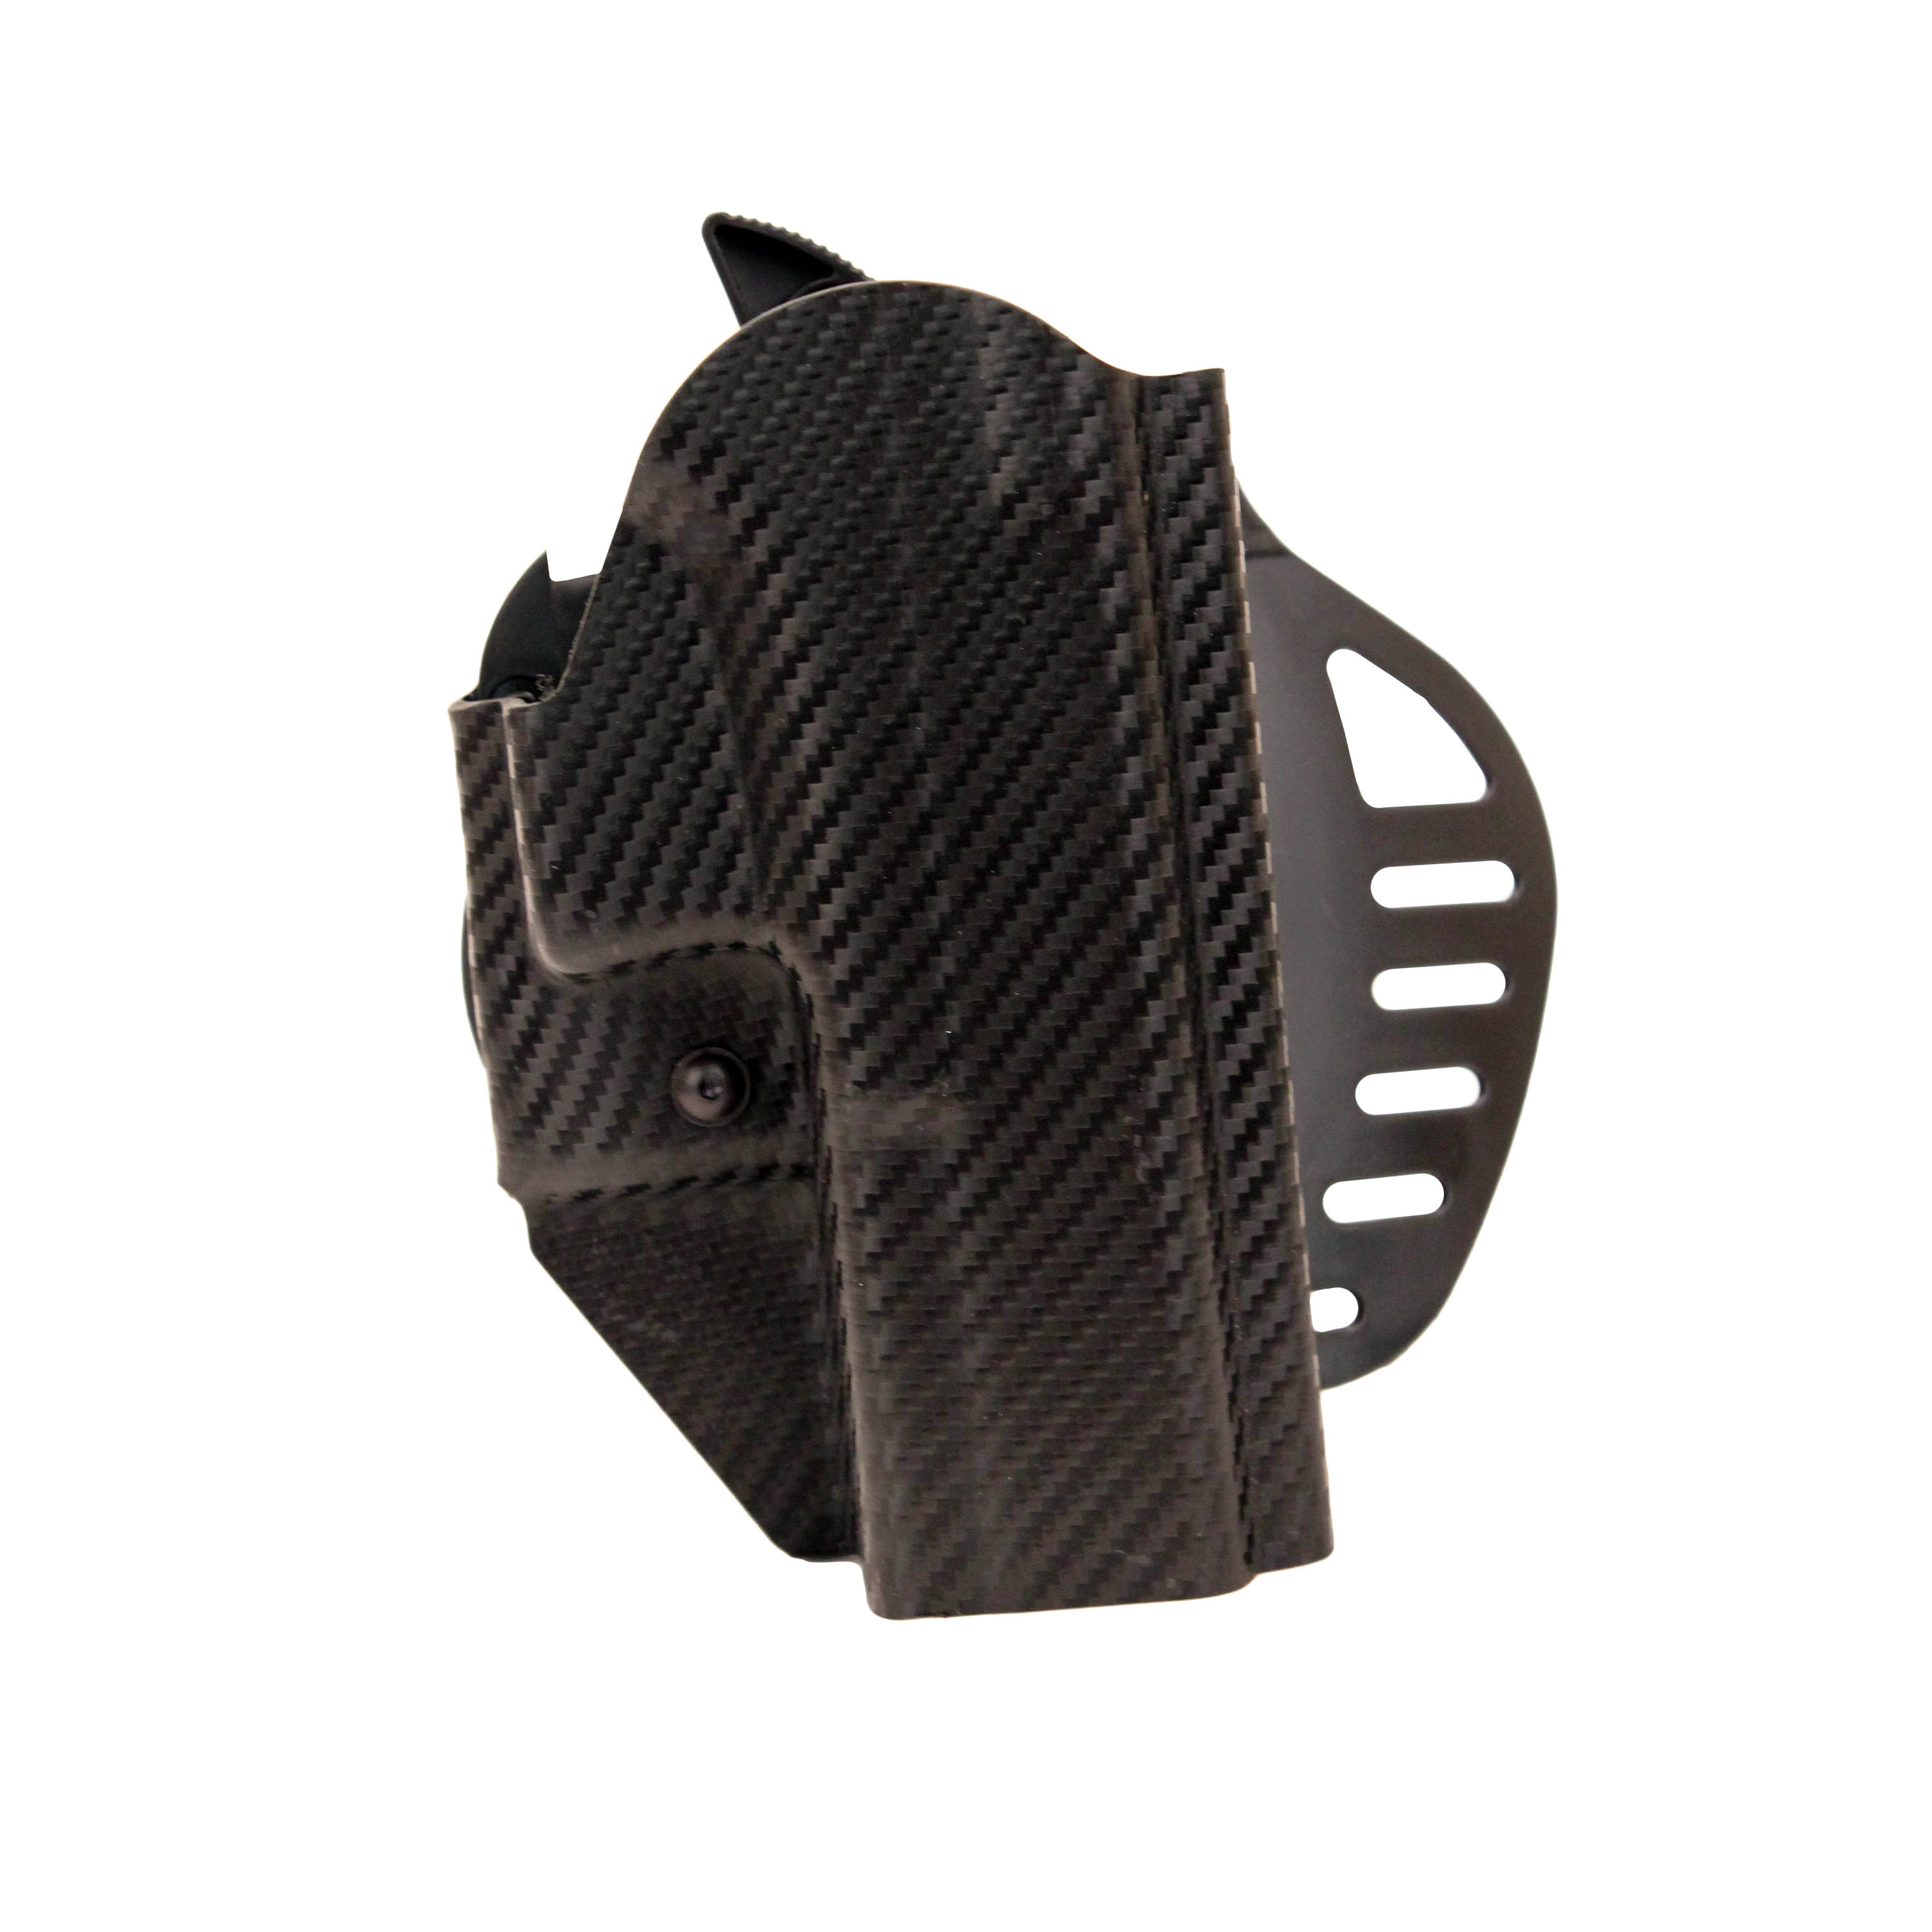 Hogue Powerspeed ARS Stage 1 CarbonFiber Weave Holster C10, Glock 20, 21, Right Hand by Hogue